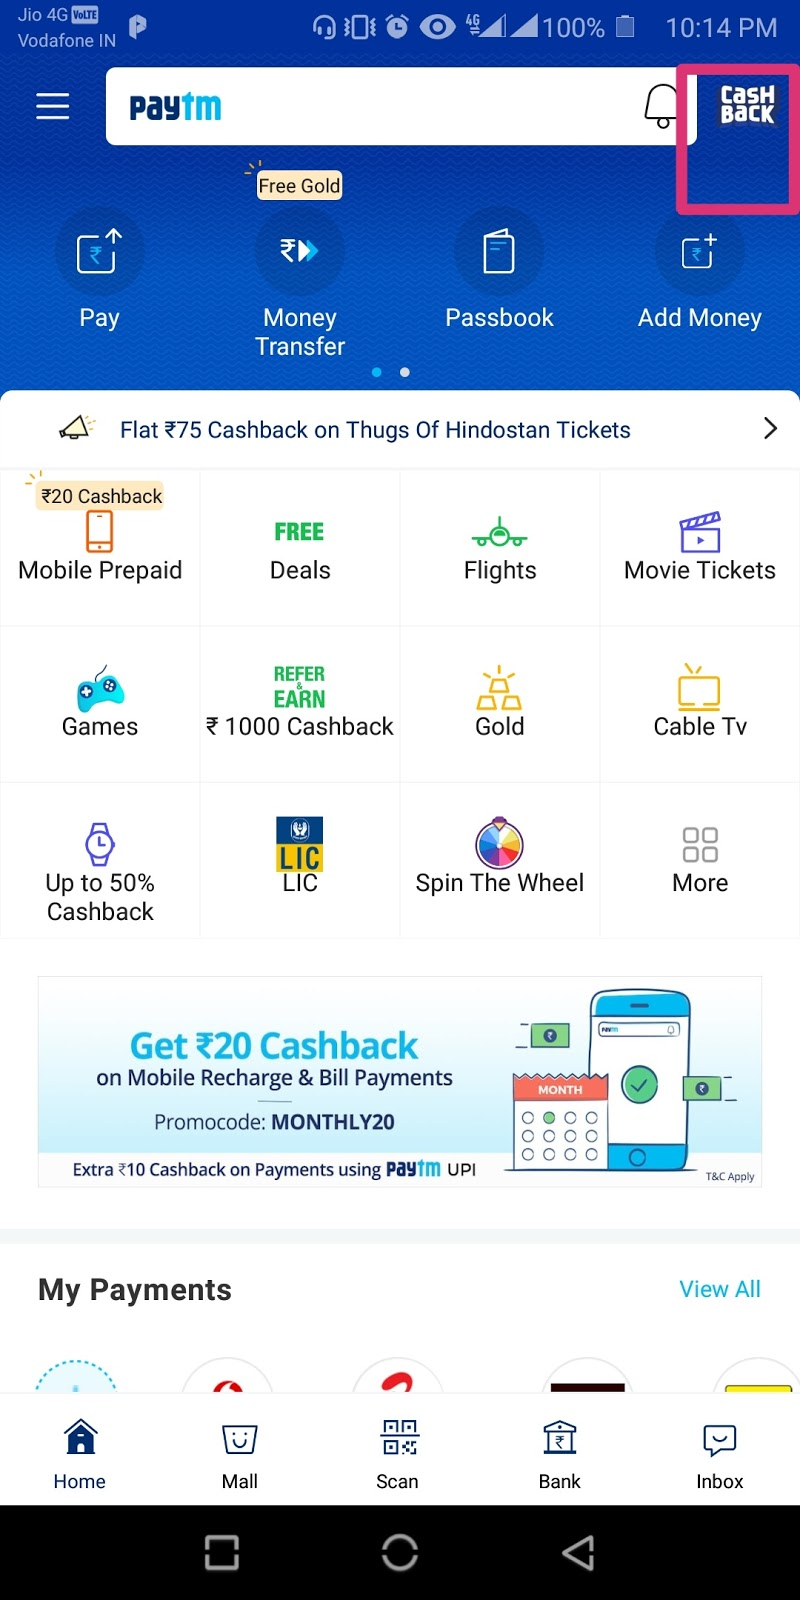 PayTm Cashback Offer| Earn Up to Rs 5,000 - TechNews com